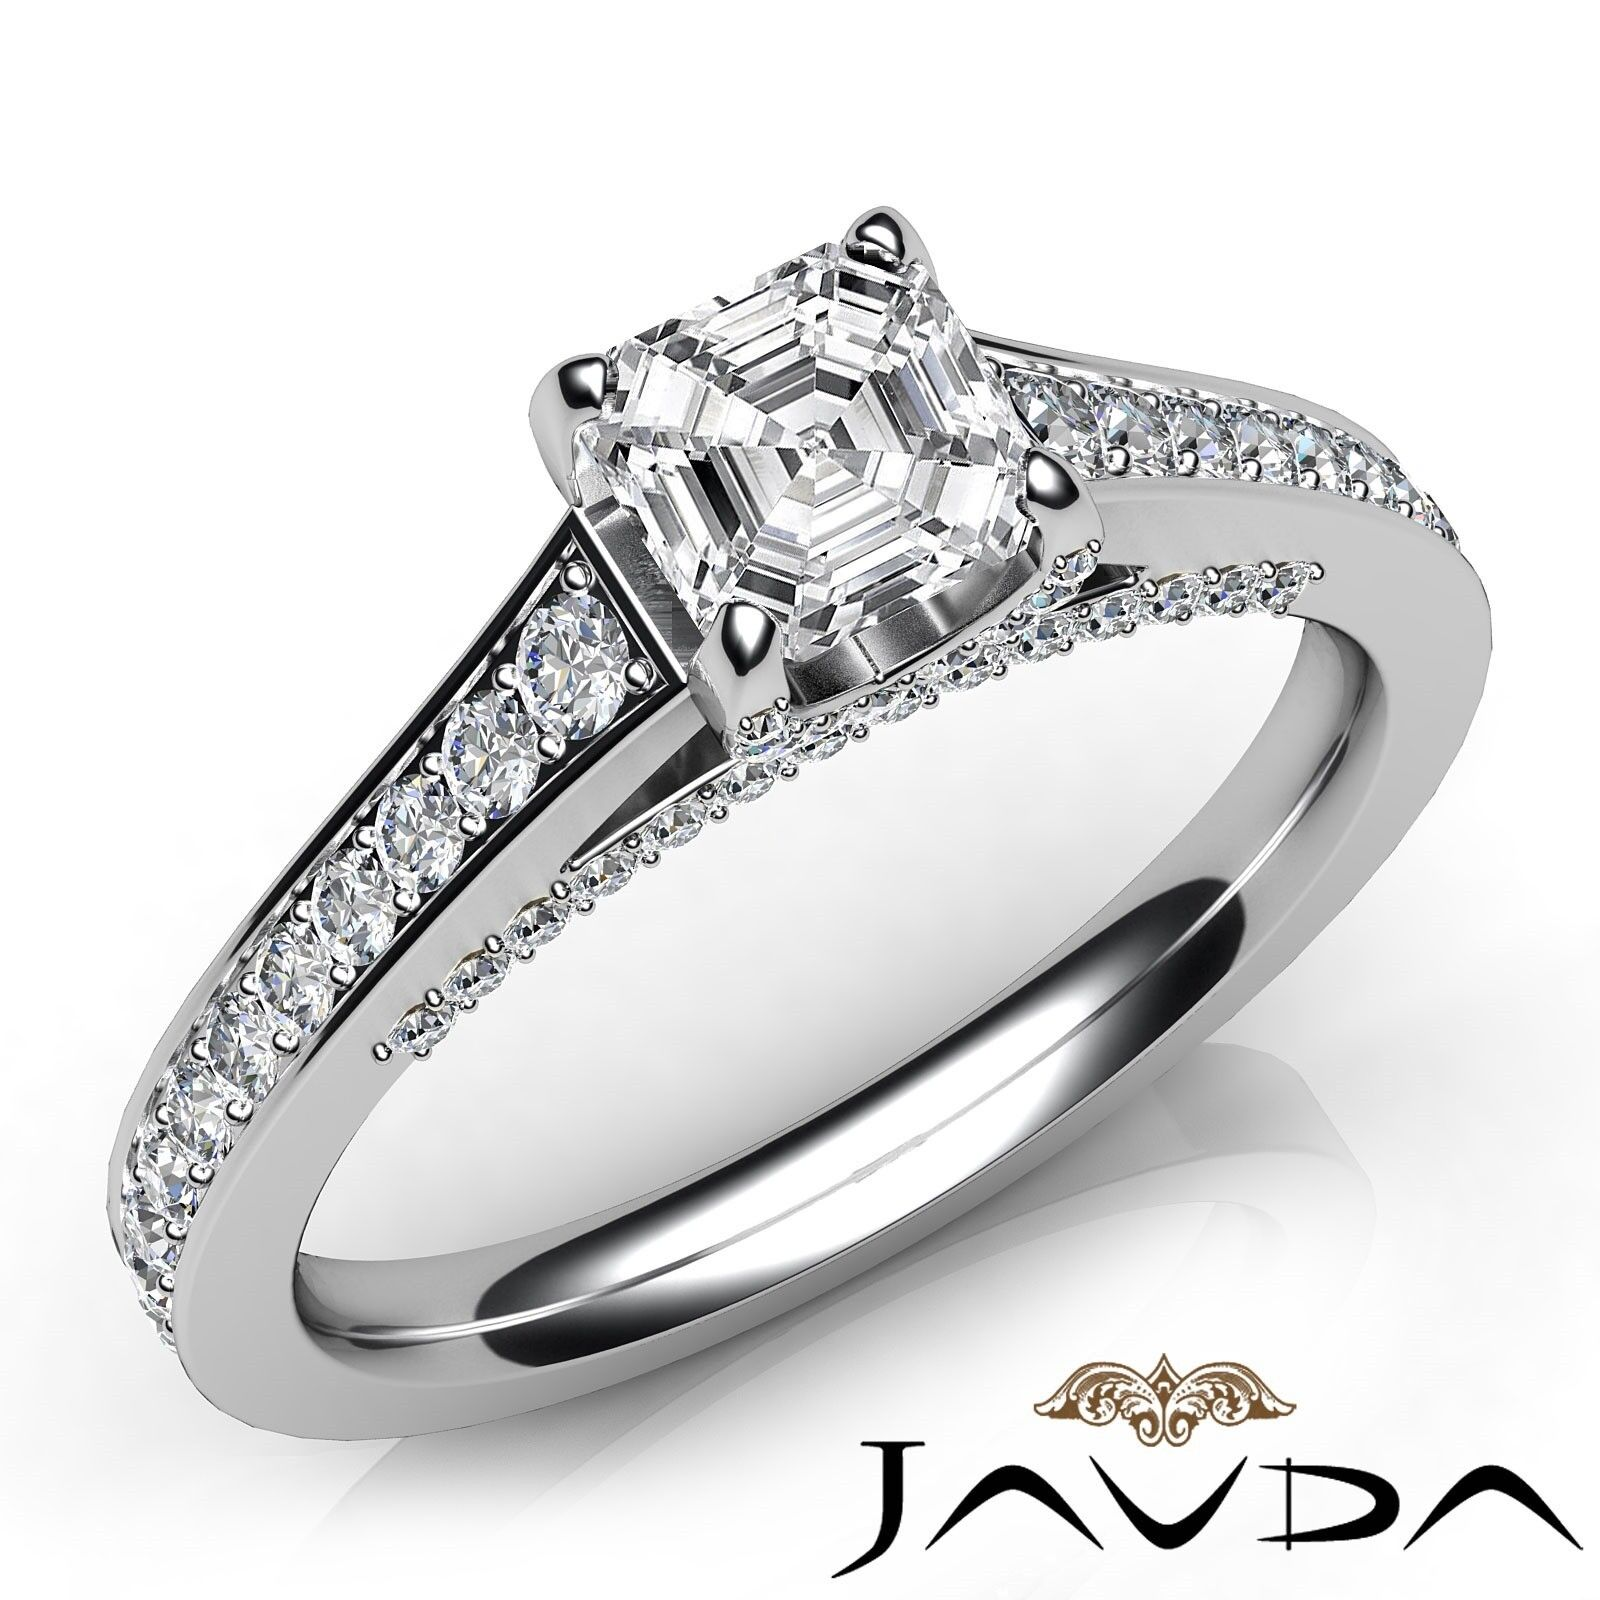 1.82ctw Brilliant Cut Asscher Diamond Engagement Ring GIA F-VS1 White Gold Rings